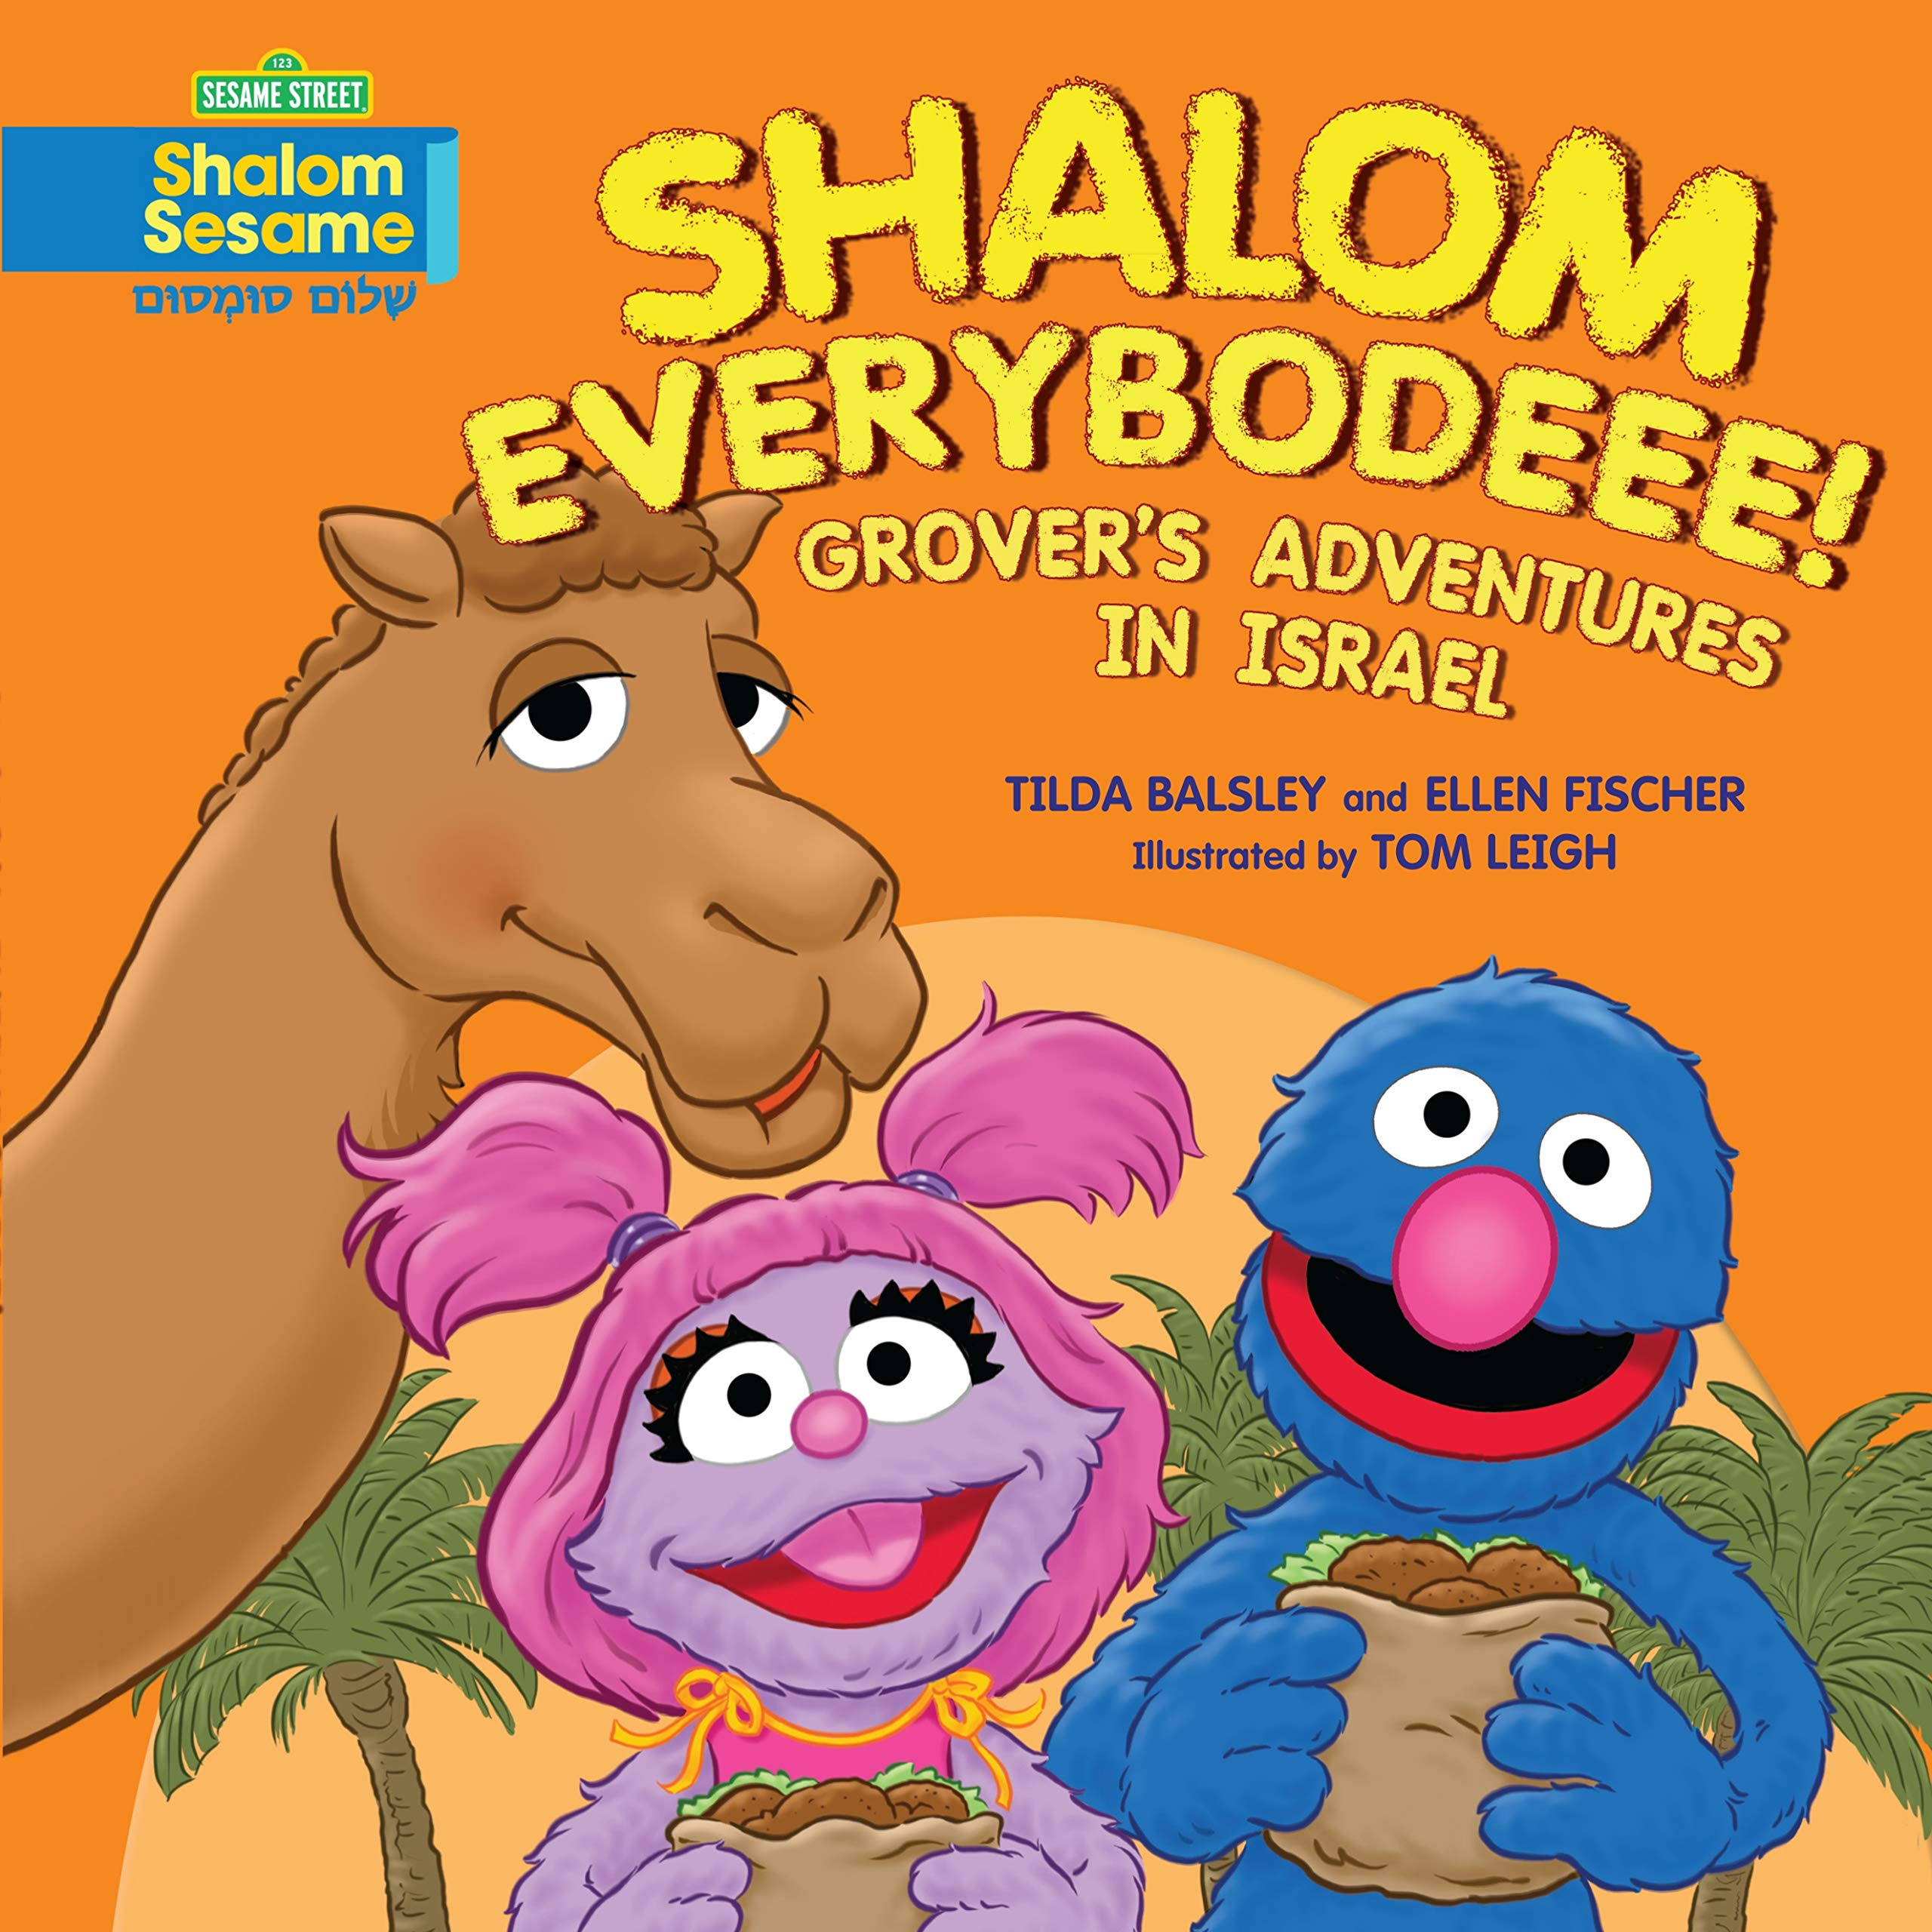 Download Shalom Everybodeee!: Grover's Adventures in Israel pdf epub